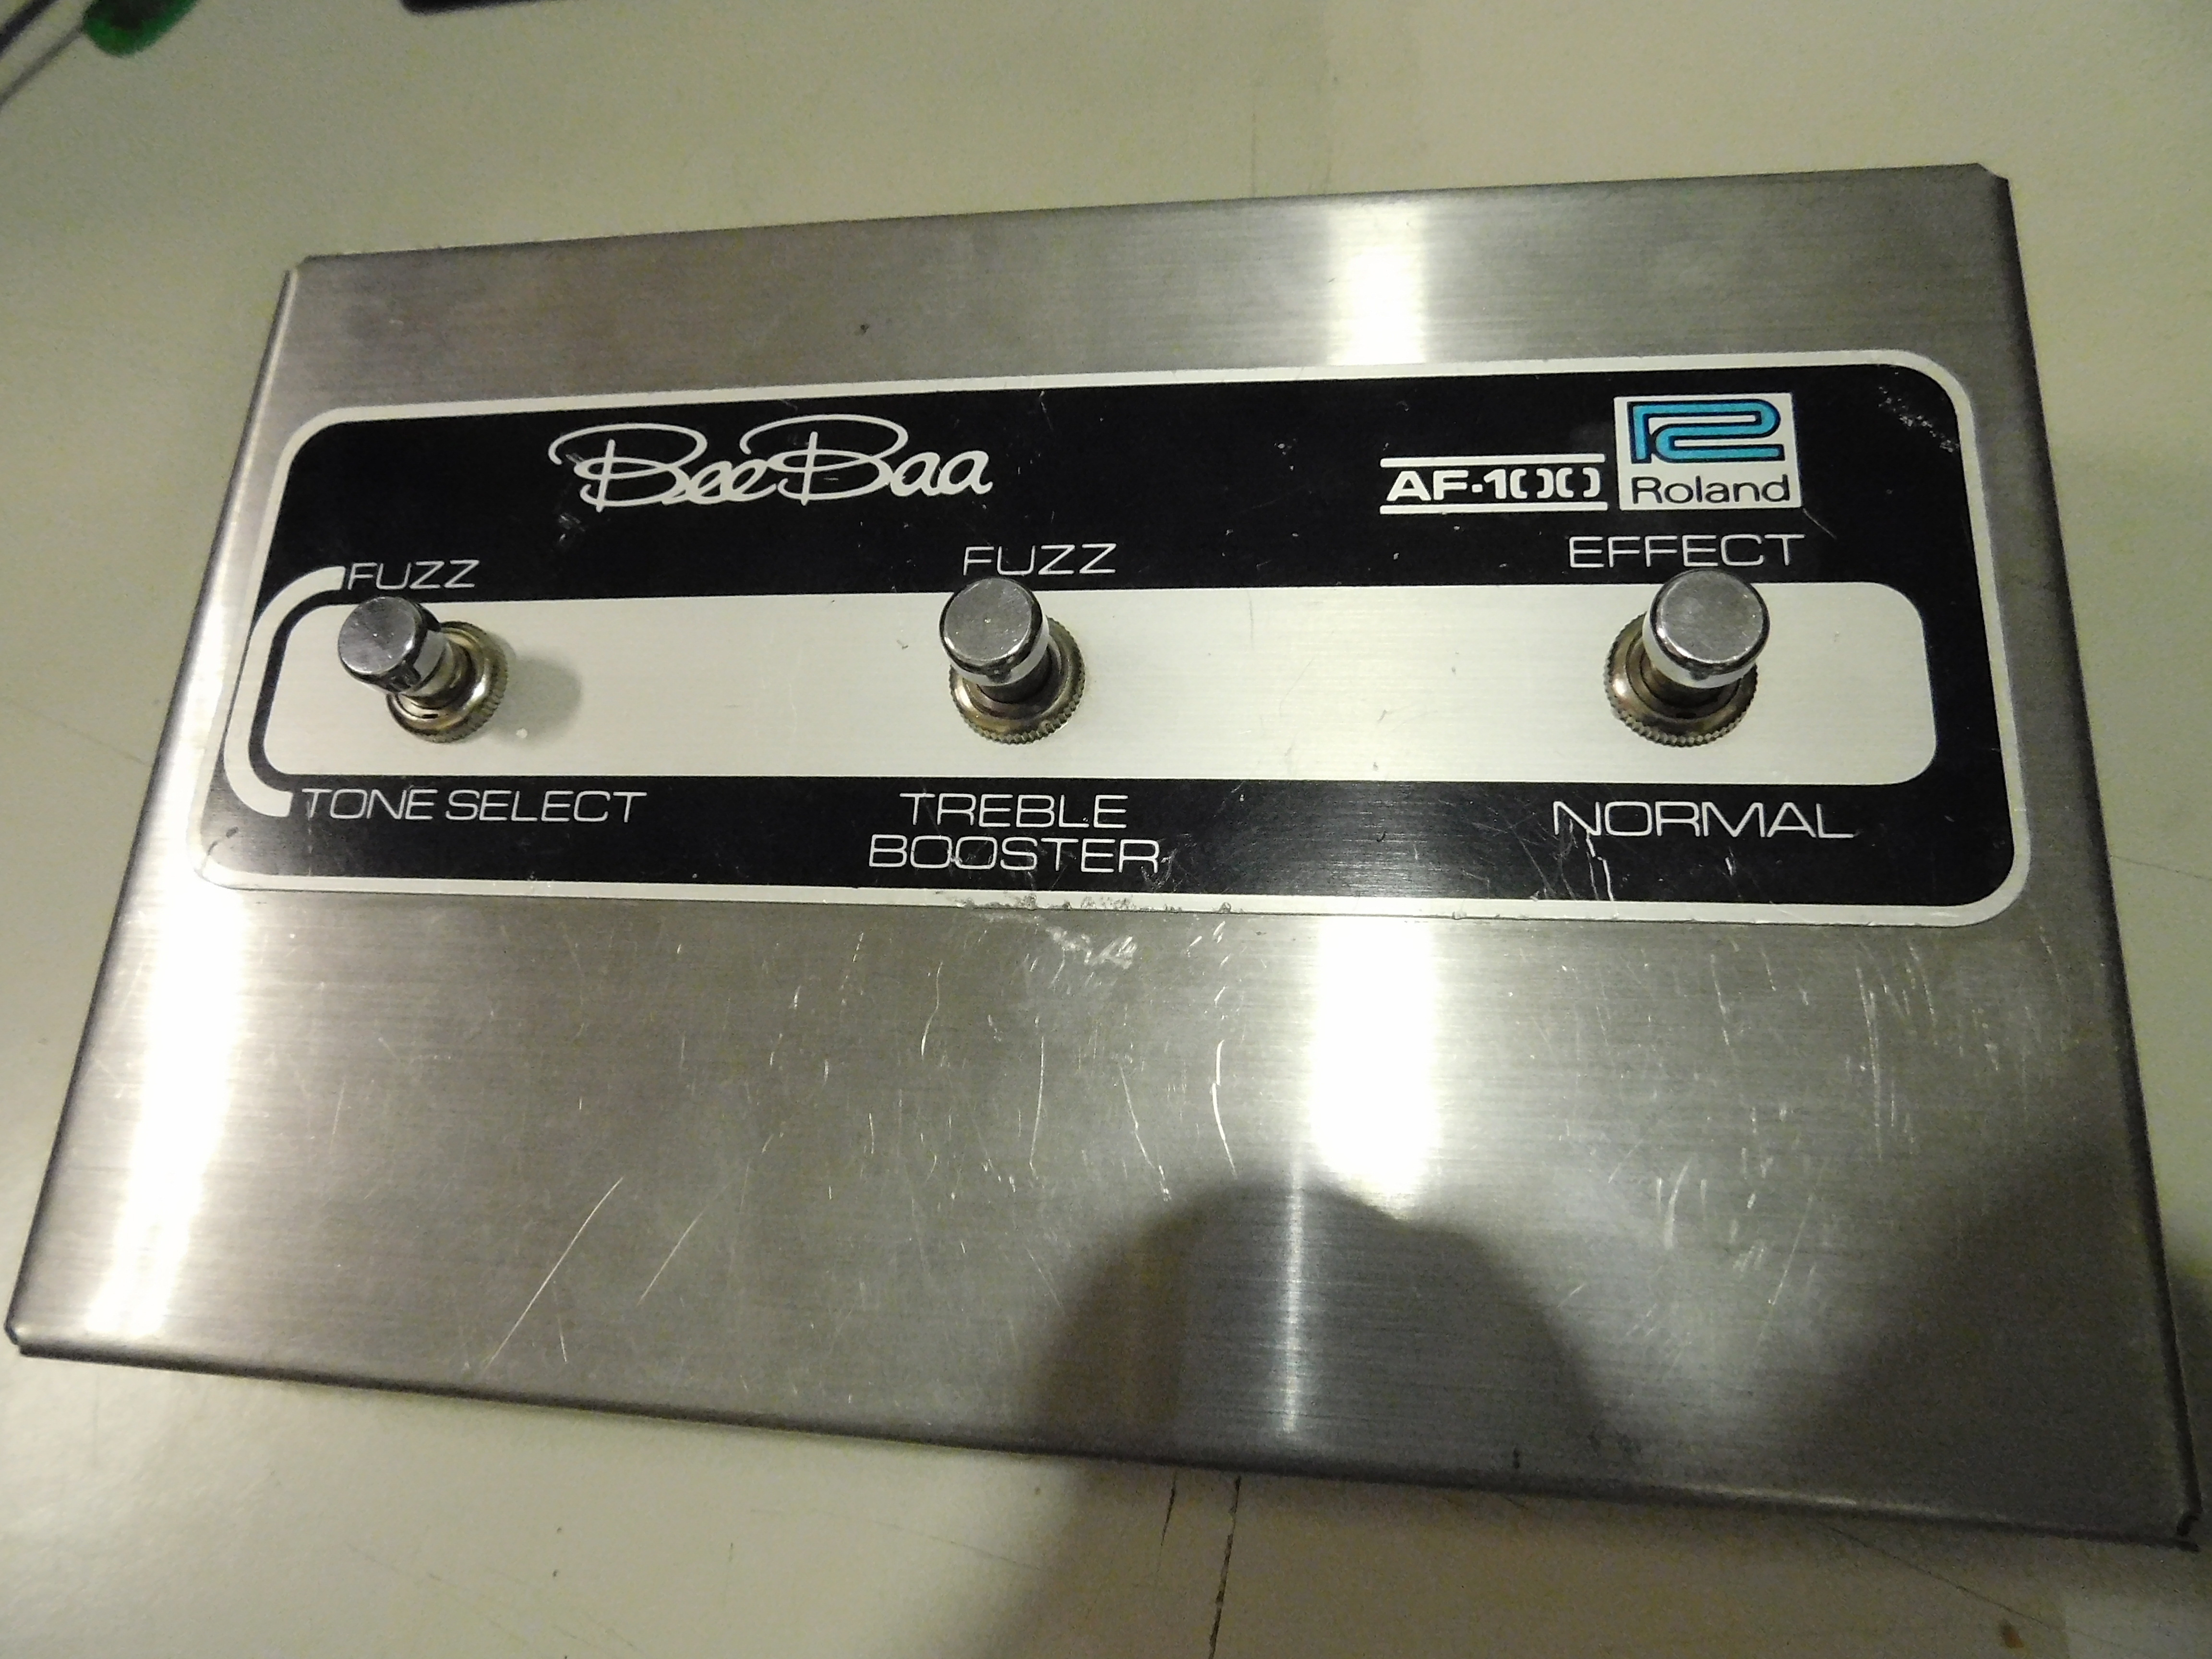 ROLAND AF-100 BeeBaa Fuzz & Treble Booster Effect Pedal